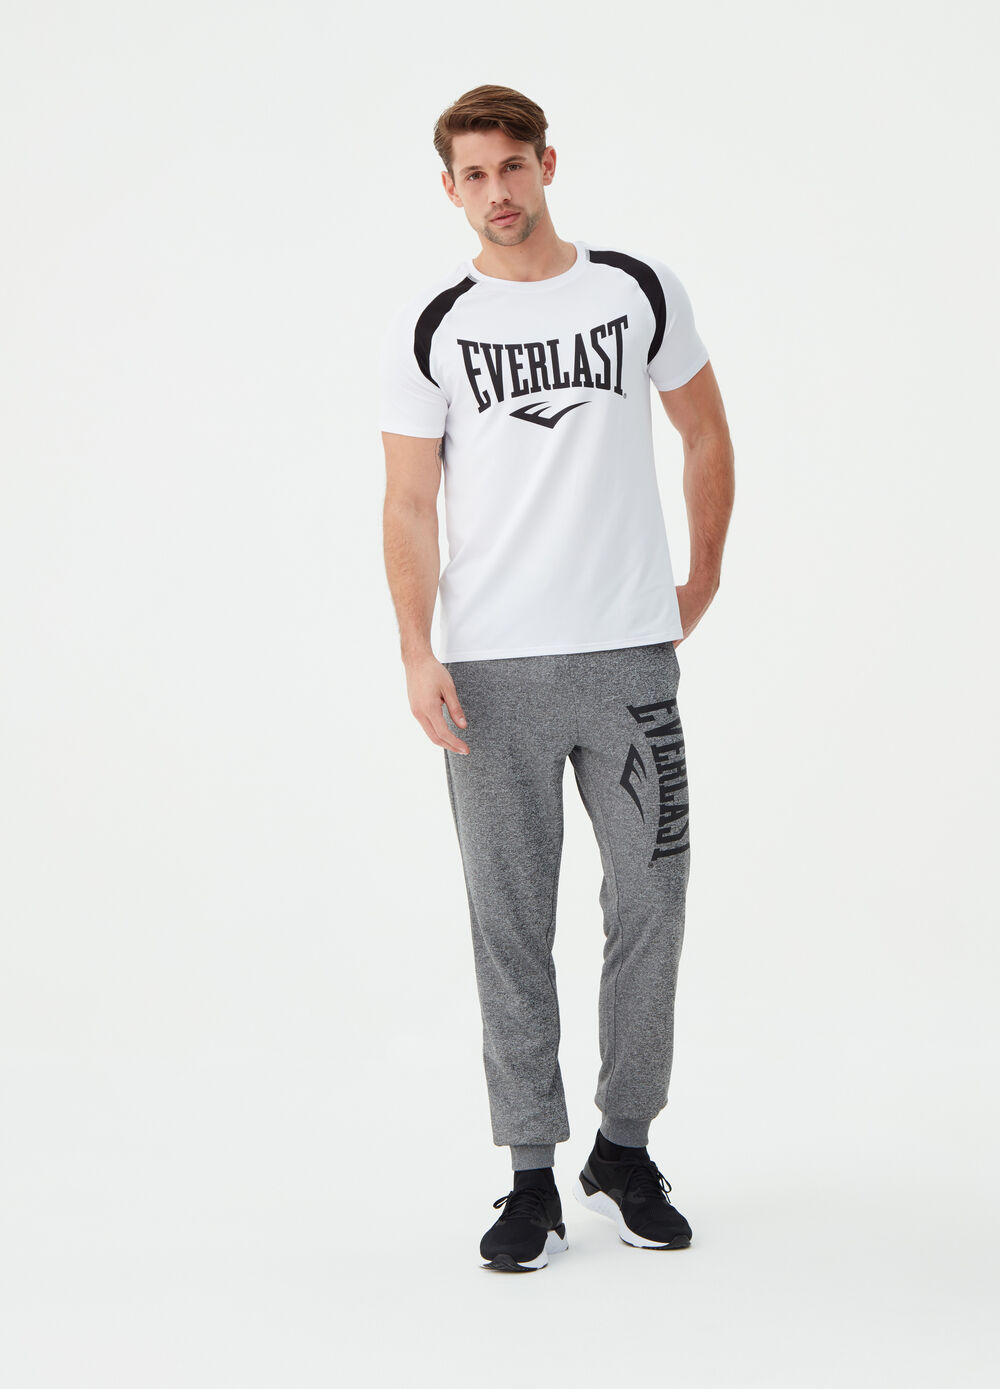 Stretch T-shirt with Everlast print